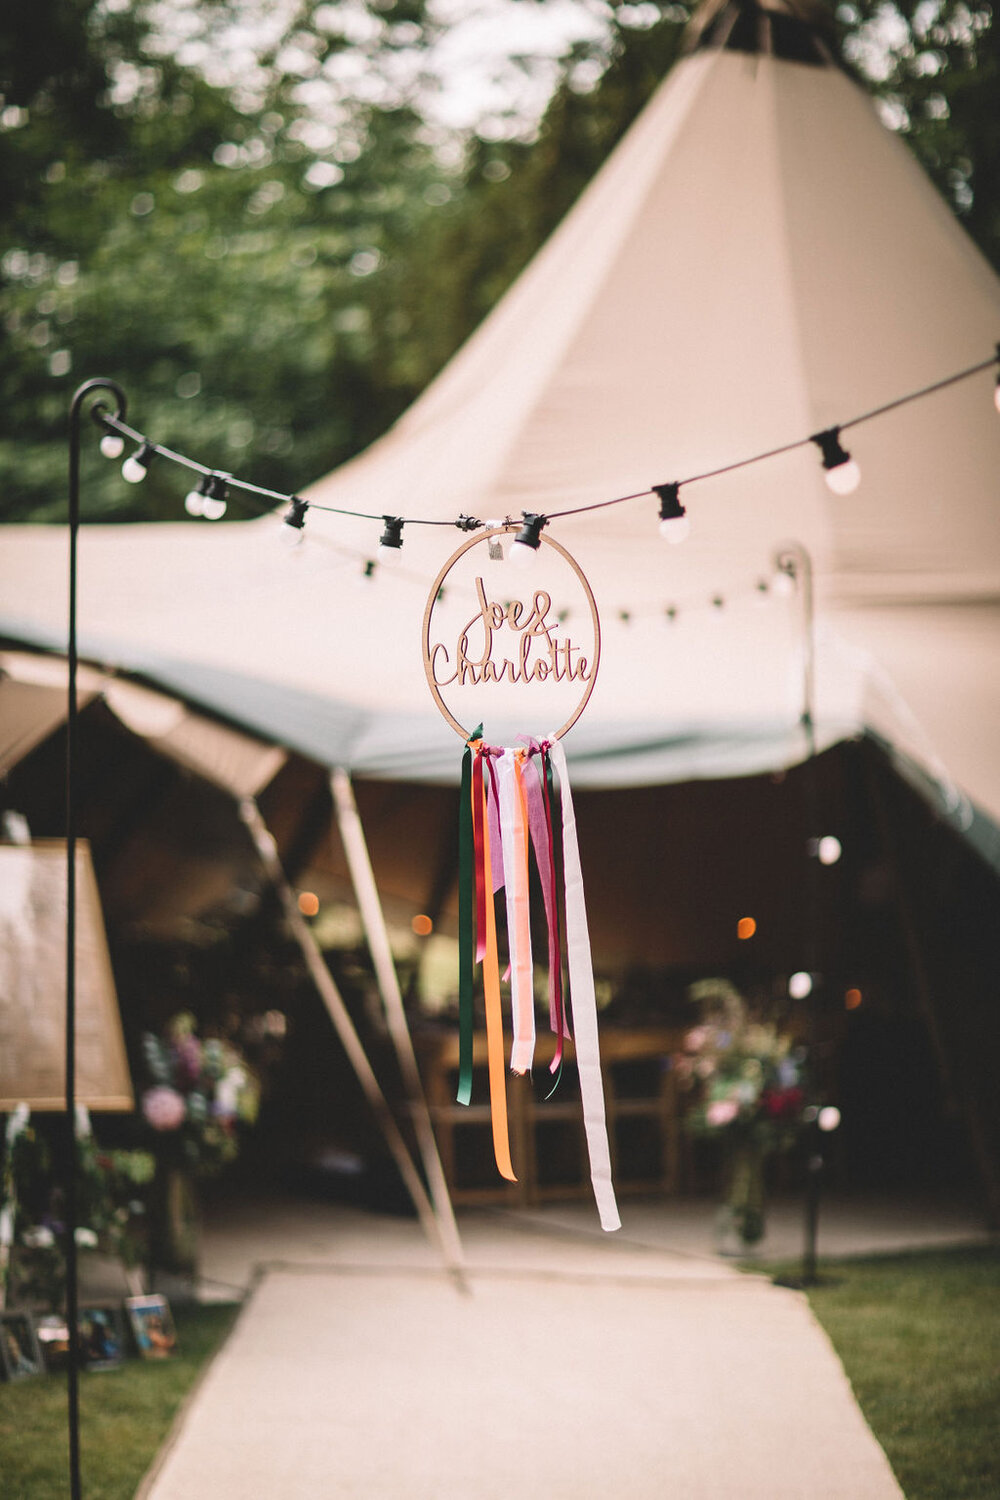 01_Charlotte-Joe-PapaKåta-Tipi-Tent-Wedding-North-Yorkshire-Lumiere-Photography-Tipi-Tent-with-Festoon-Walkway.jpg